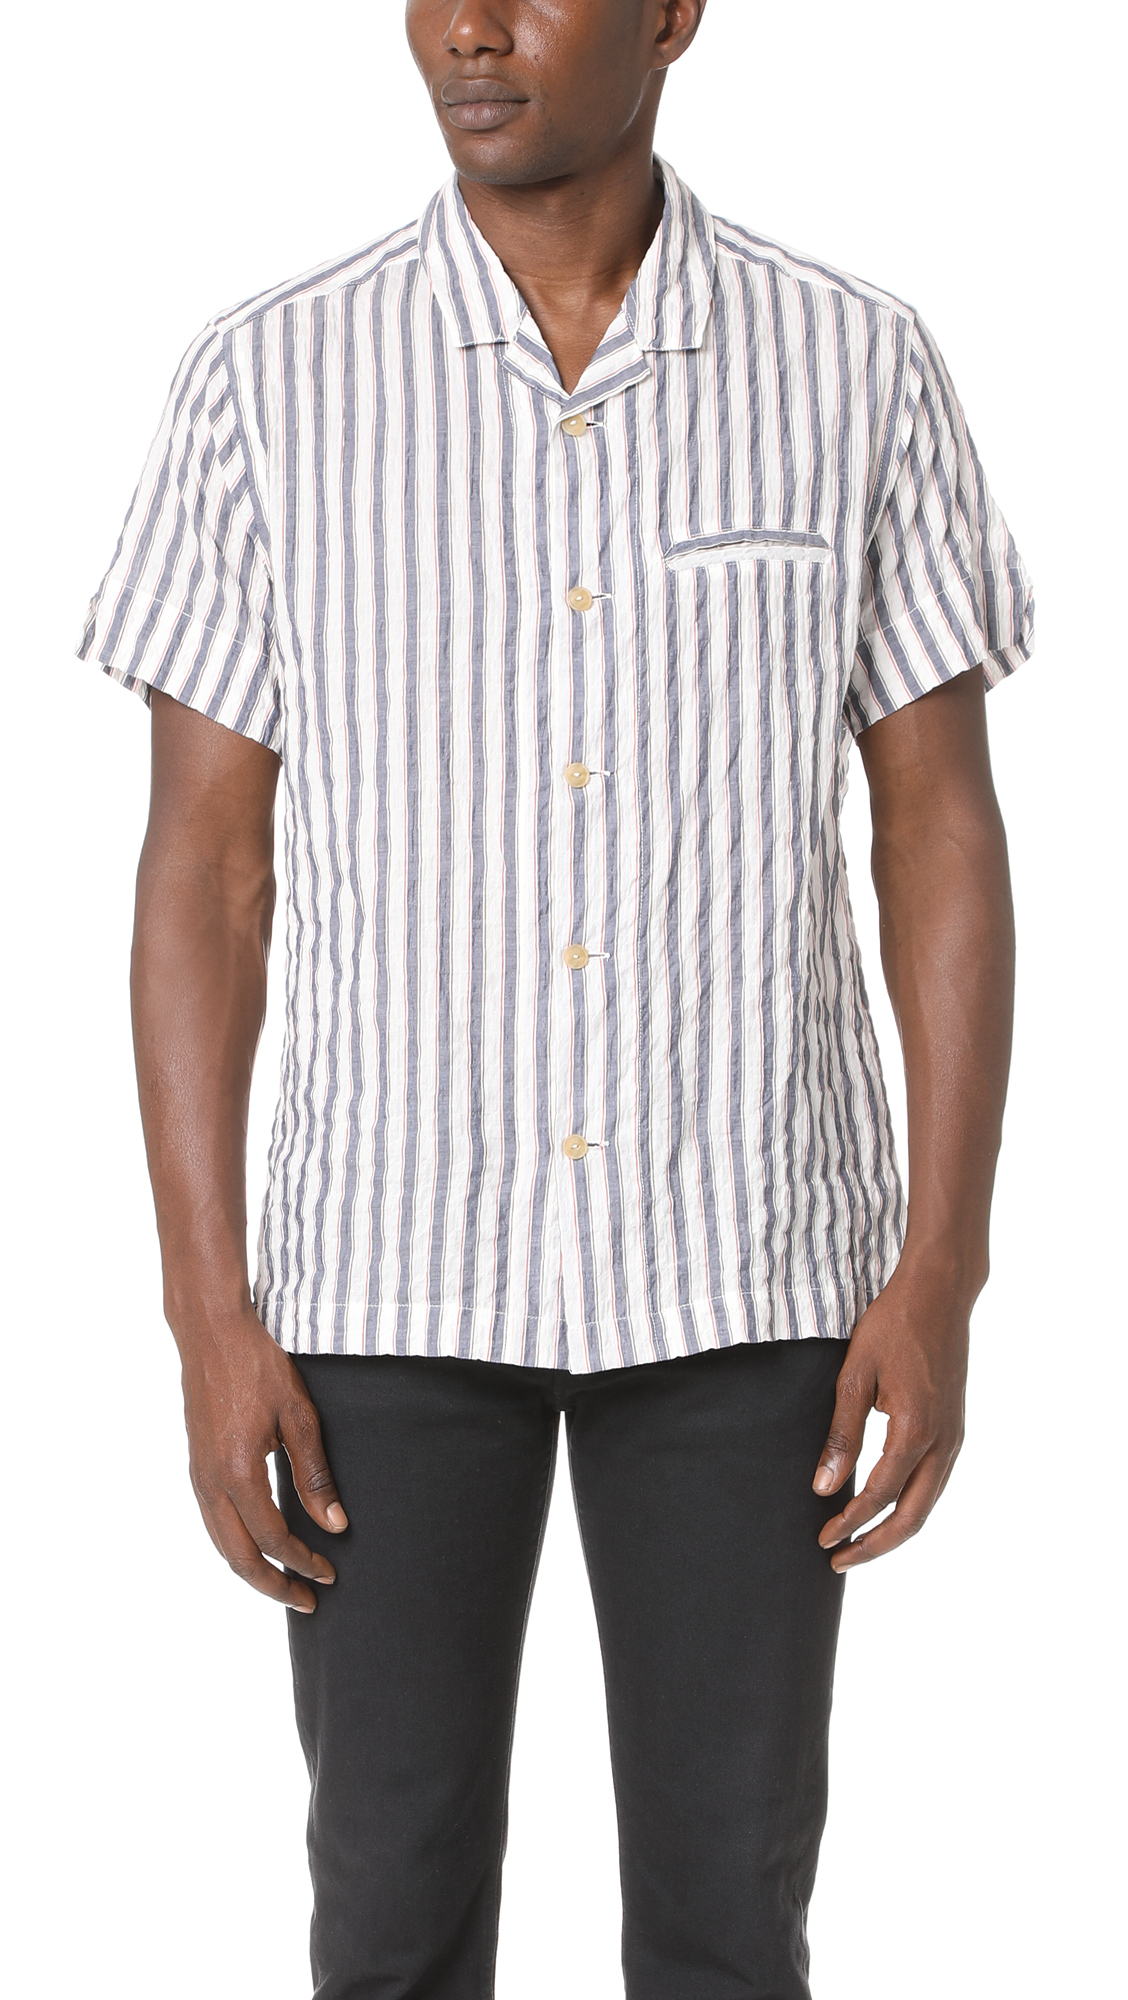 Solid & Striped The Ripley Short Sleeve Shirt In Chesapeake Stripe